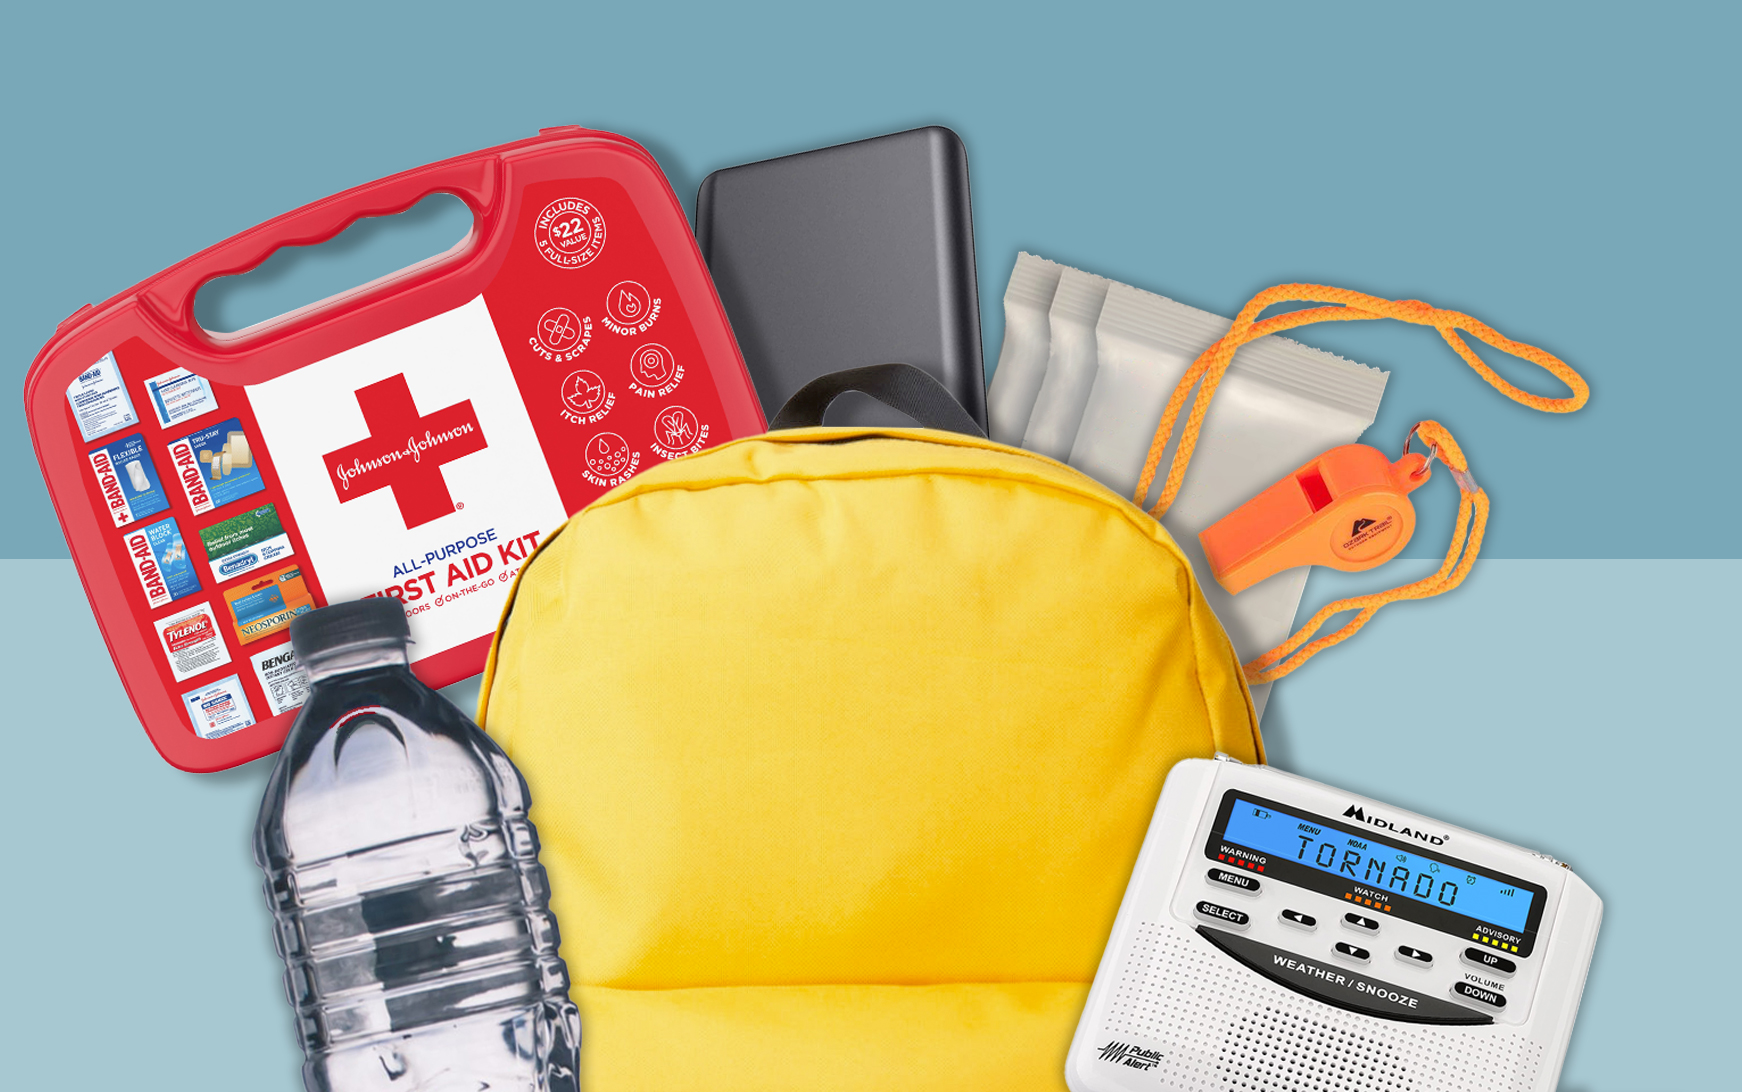 emergency kit items with yellow backpack on blue backgrouond